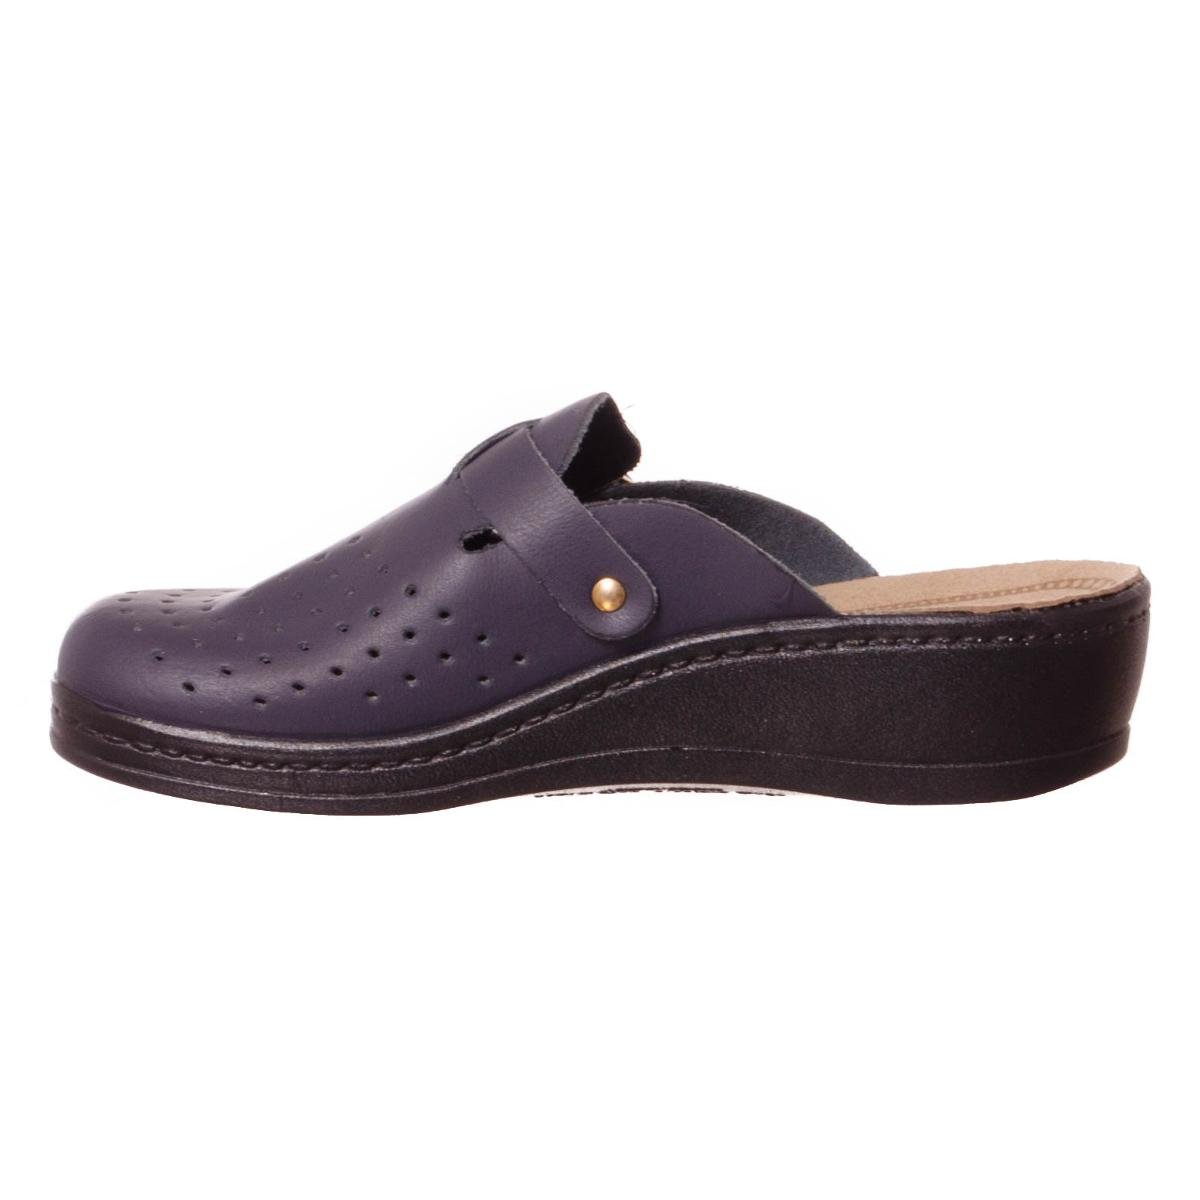 Fly Flot Ciabatte sanitarie blu scarpe donna 1570  Amazon.it  Scarpe e borse 896c0b3dd21